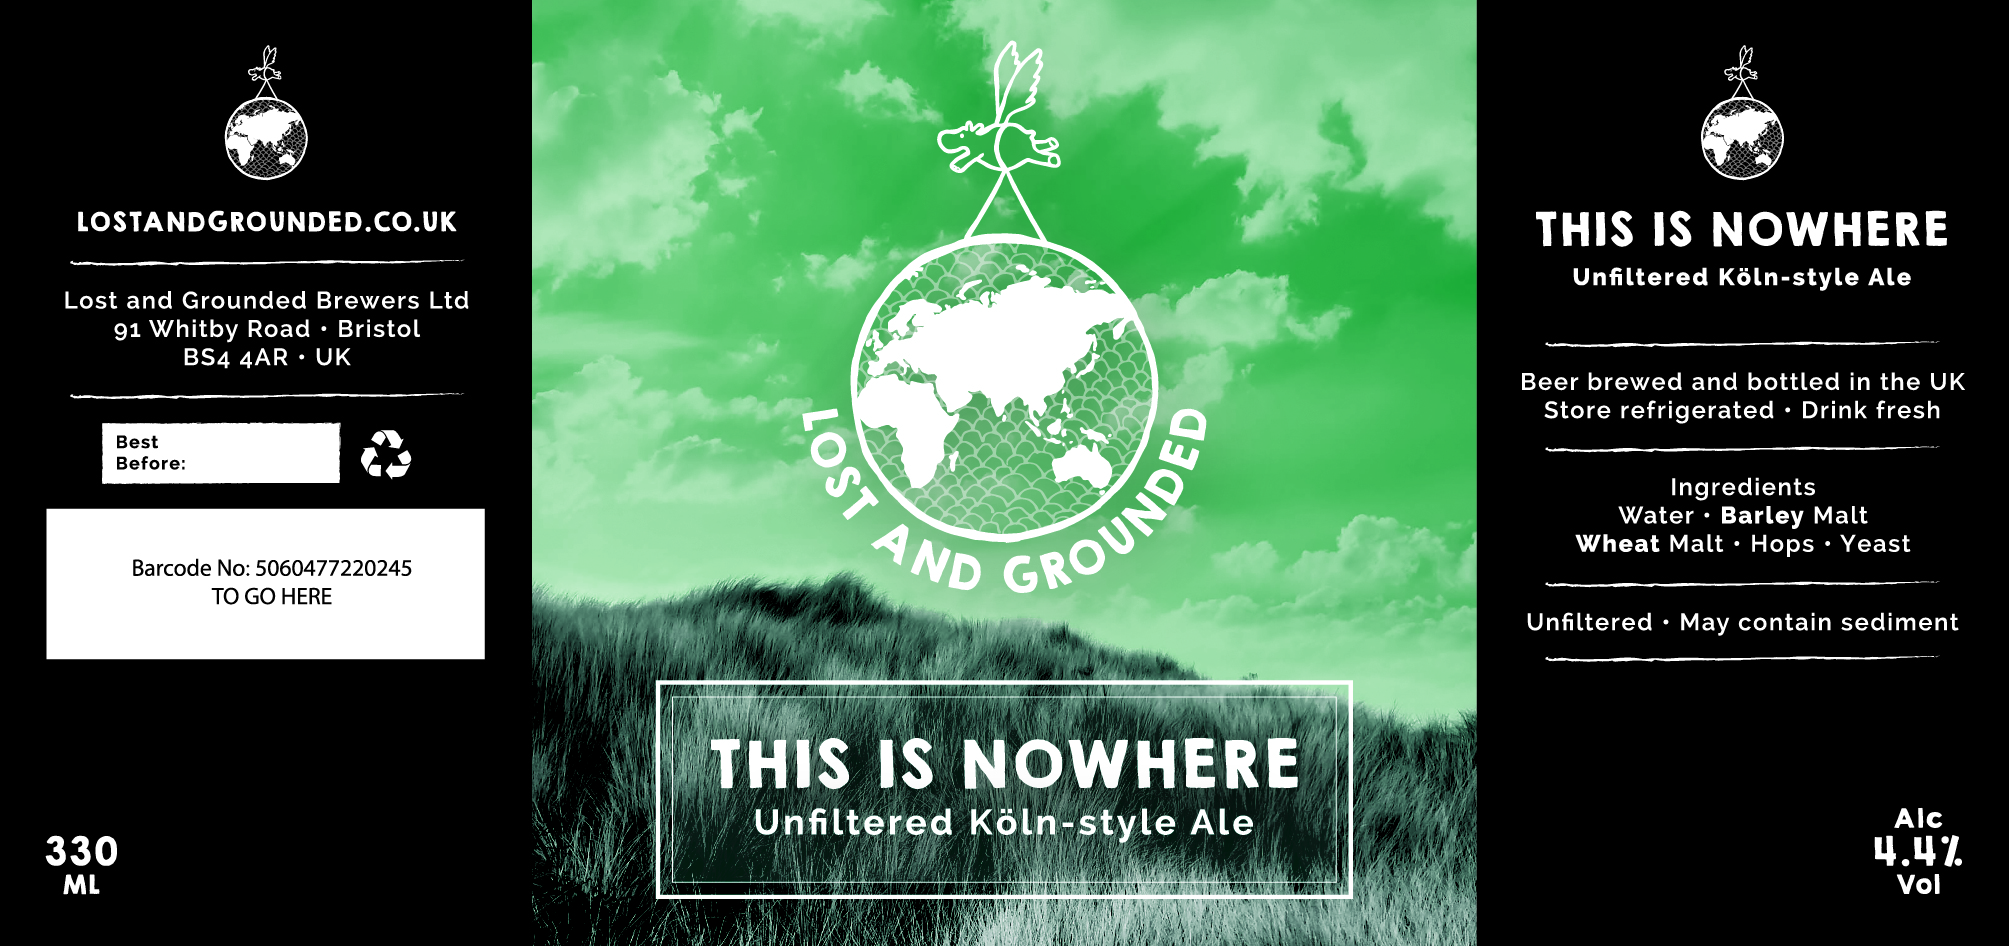 L&G_Label_This is Nowhere_AW-01.jpg